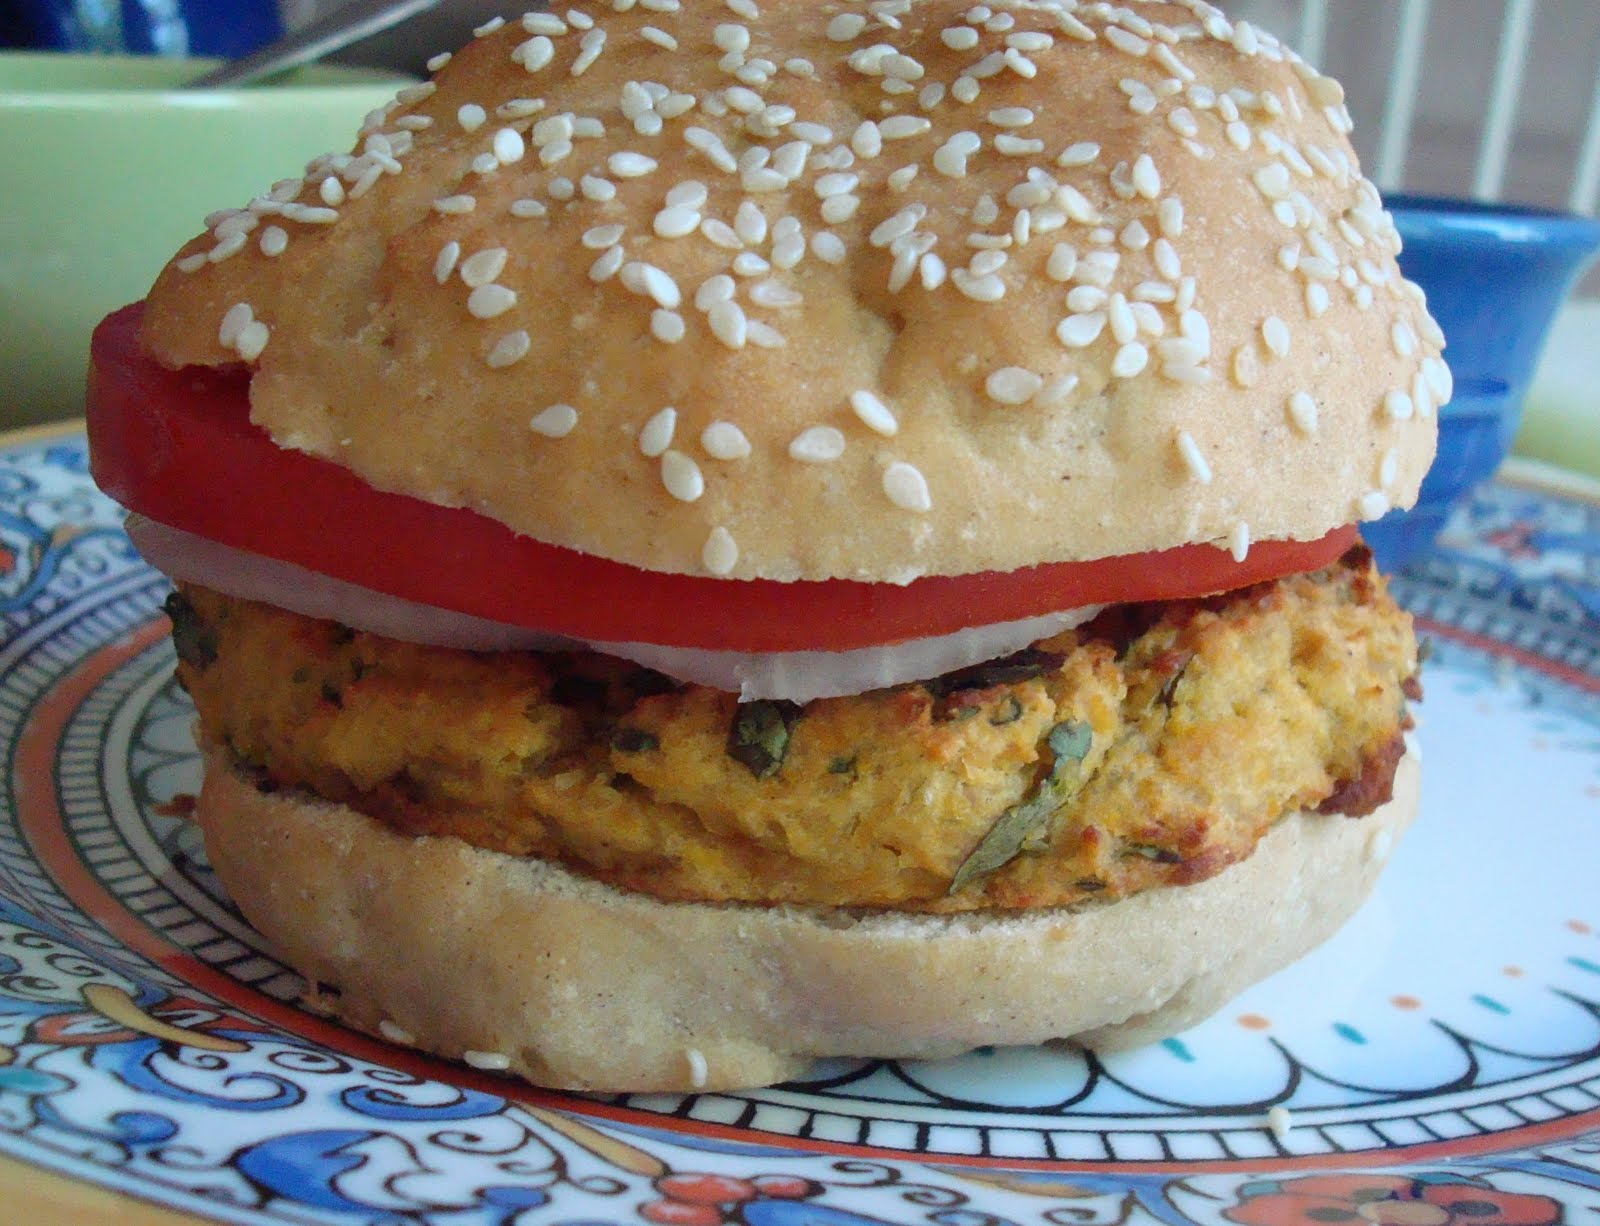 chacha's gluten free kitchen: Meatless Monday – Falafel Burgers